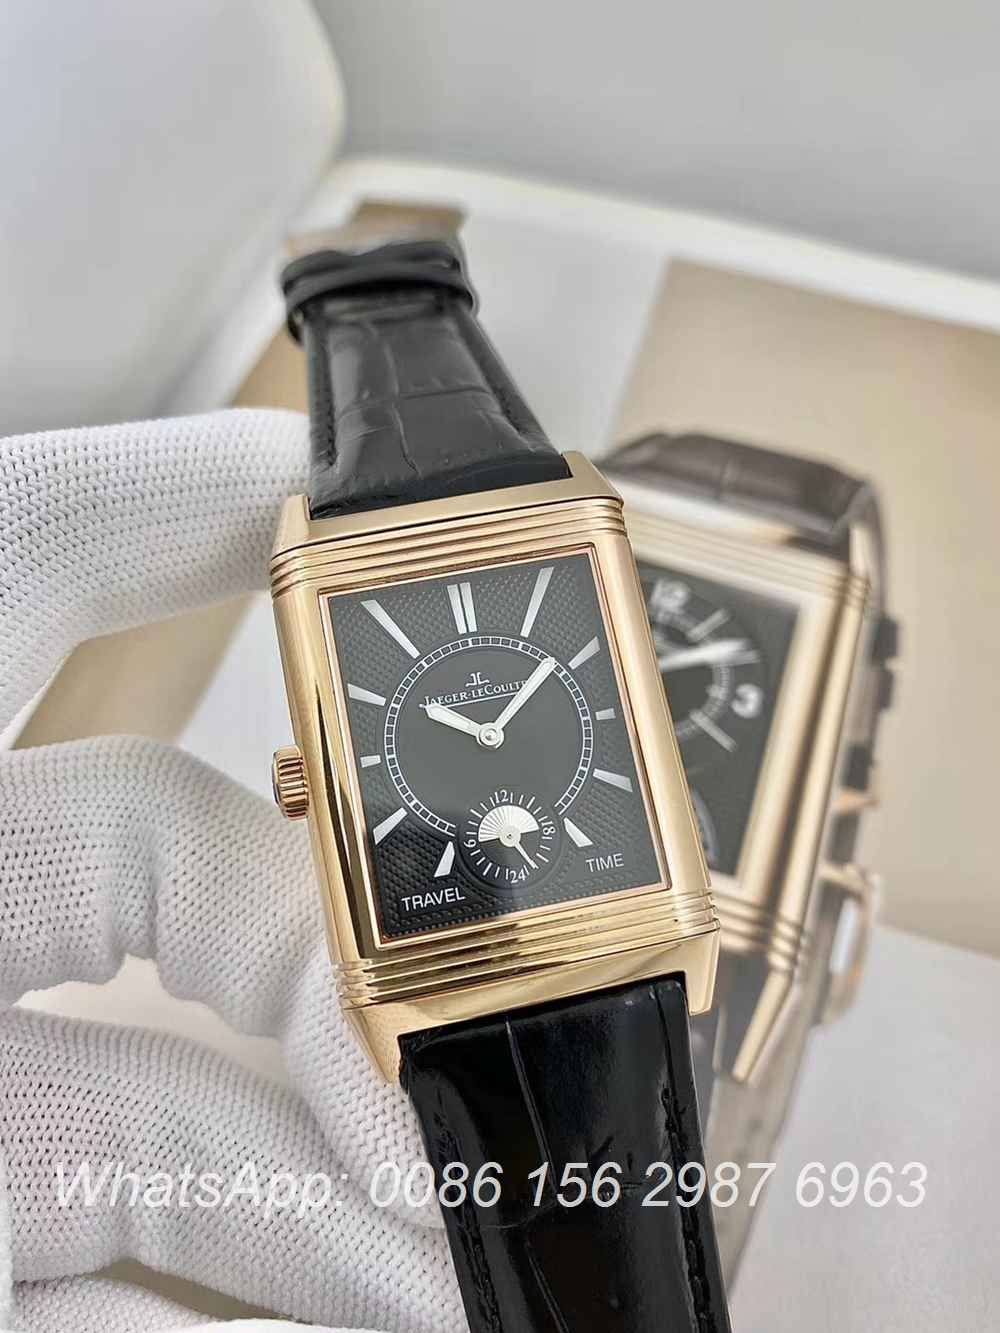 JL160XD318, JL Reverso Classic Large Duoface Small Second 29x49mm hands-winding